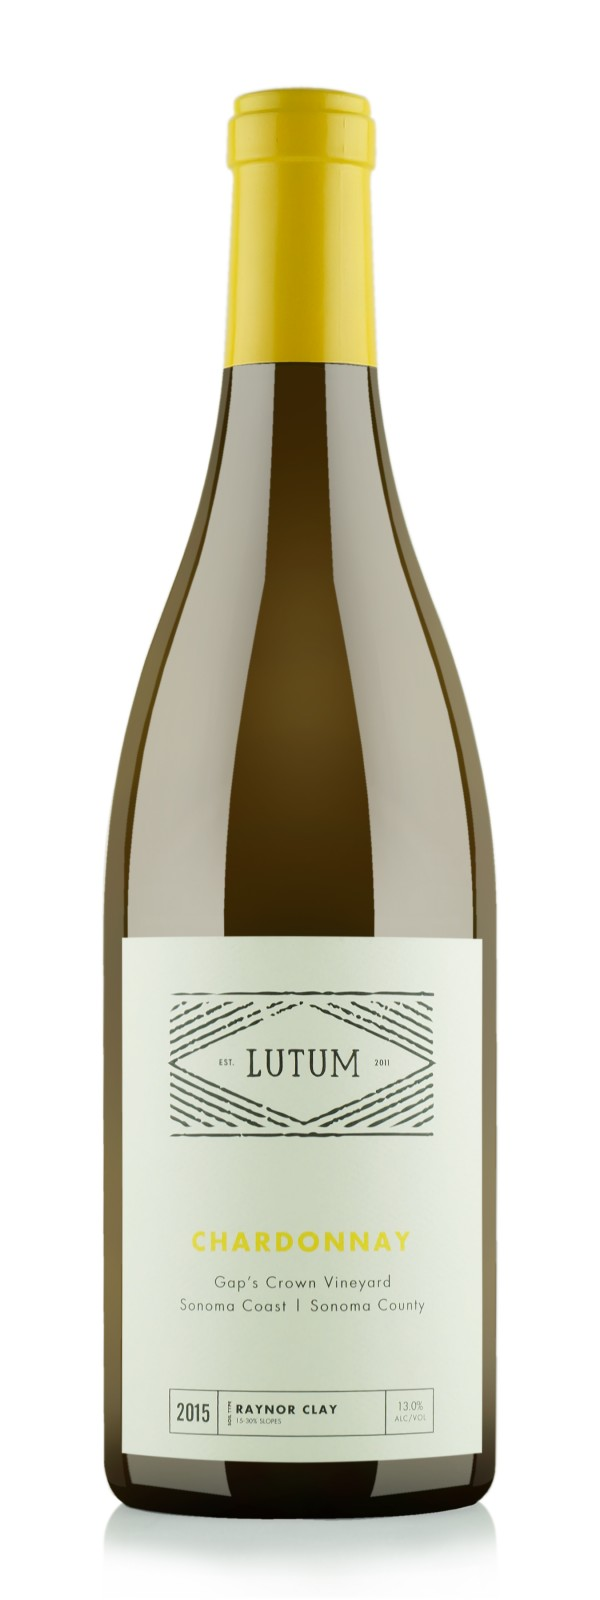 2015 Gap's Crown Vineyard Chardonnay  - Lutum Wines